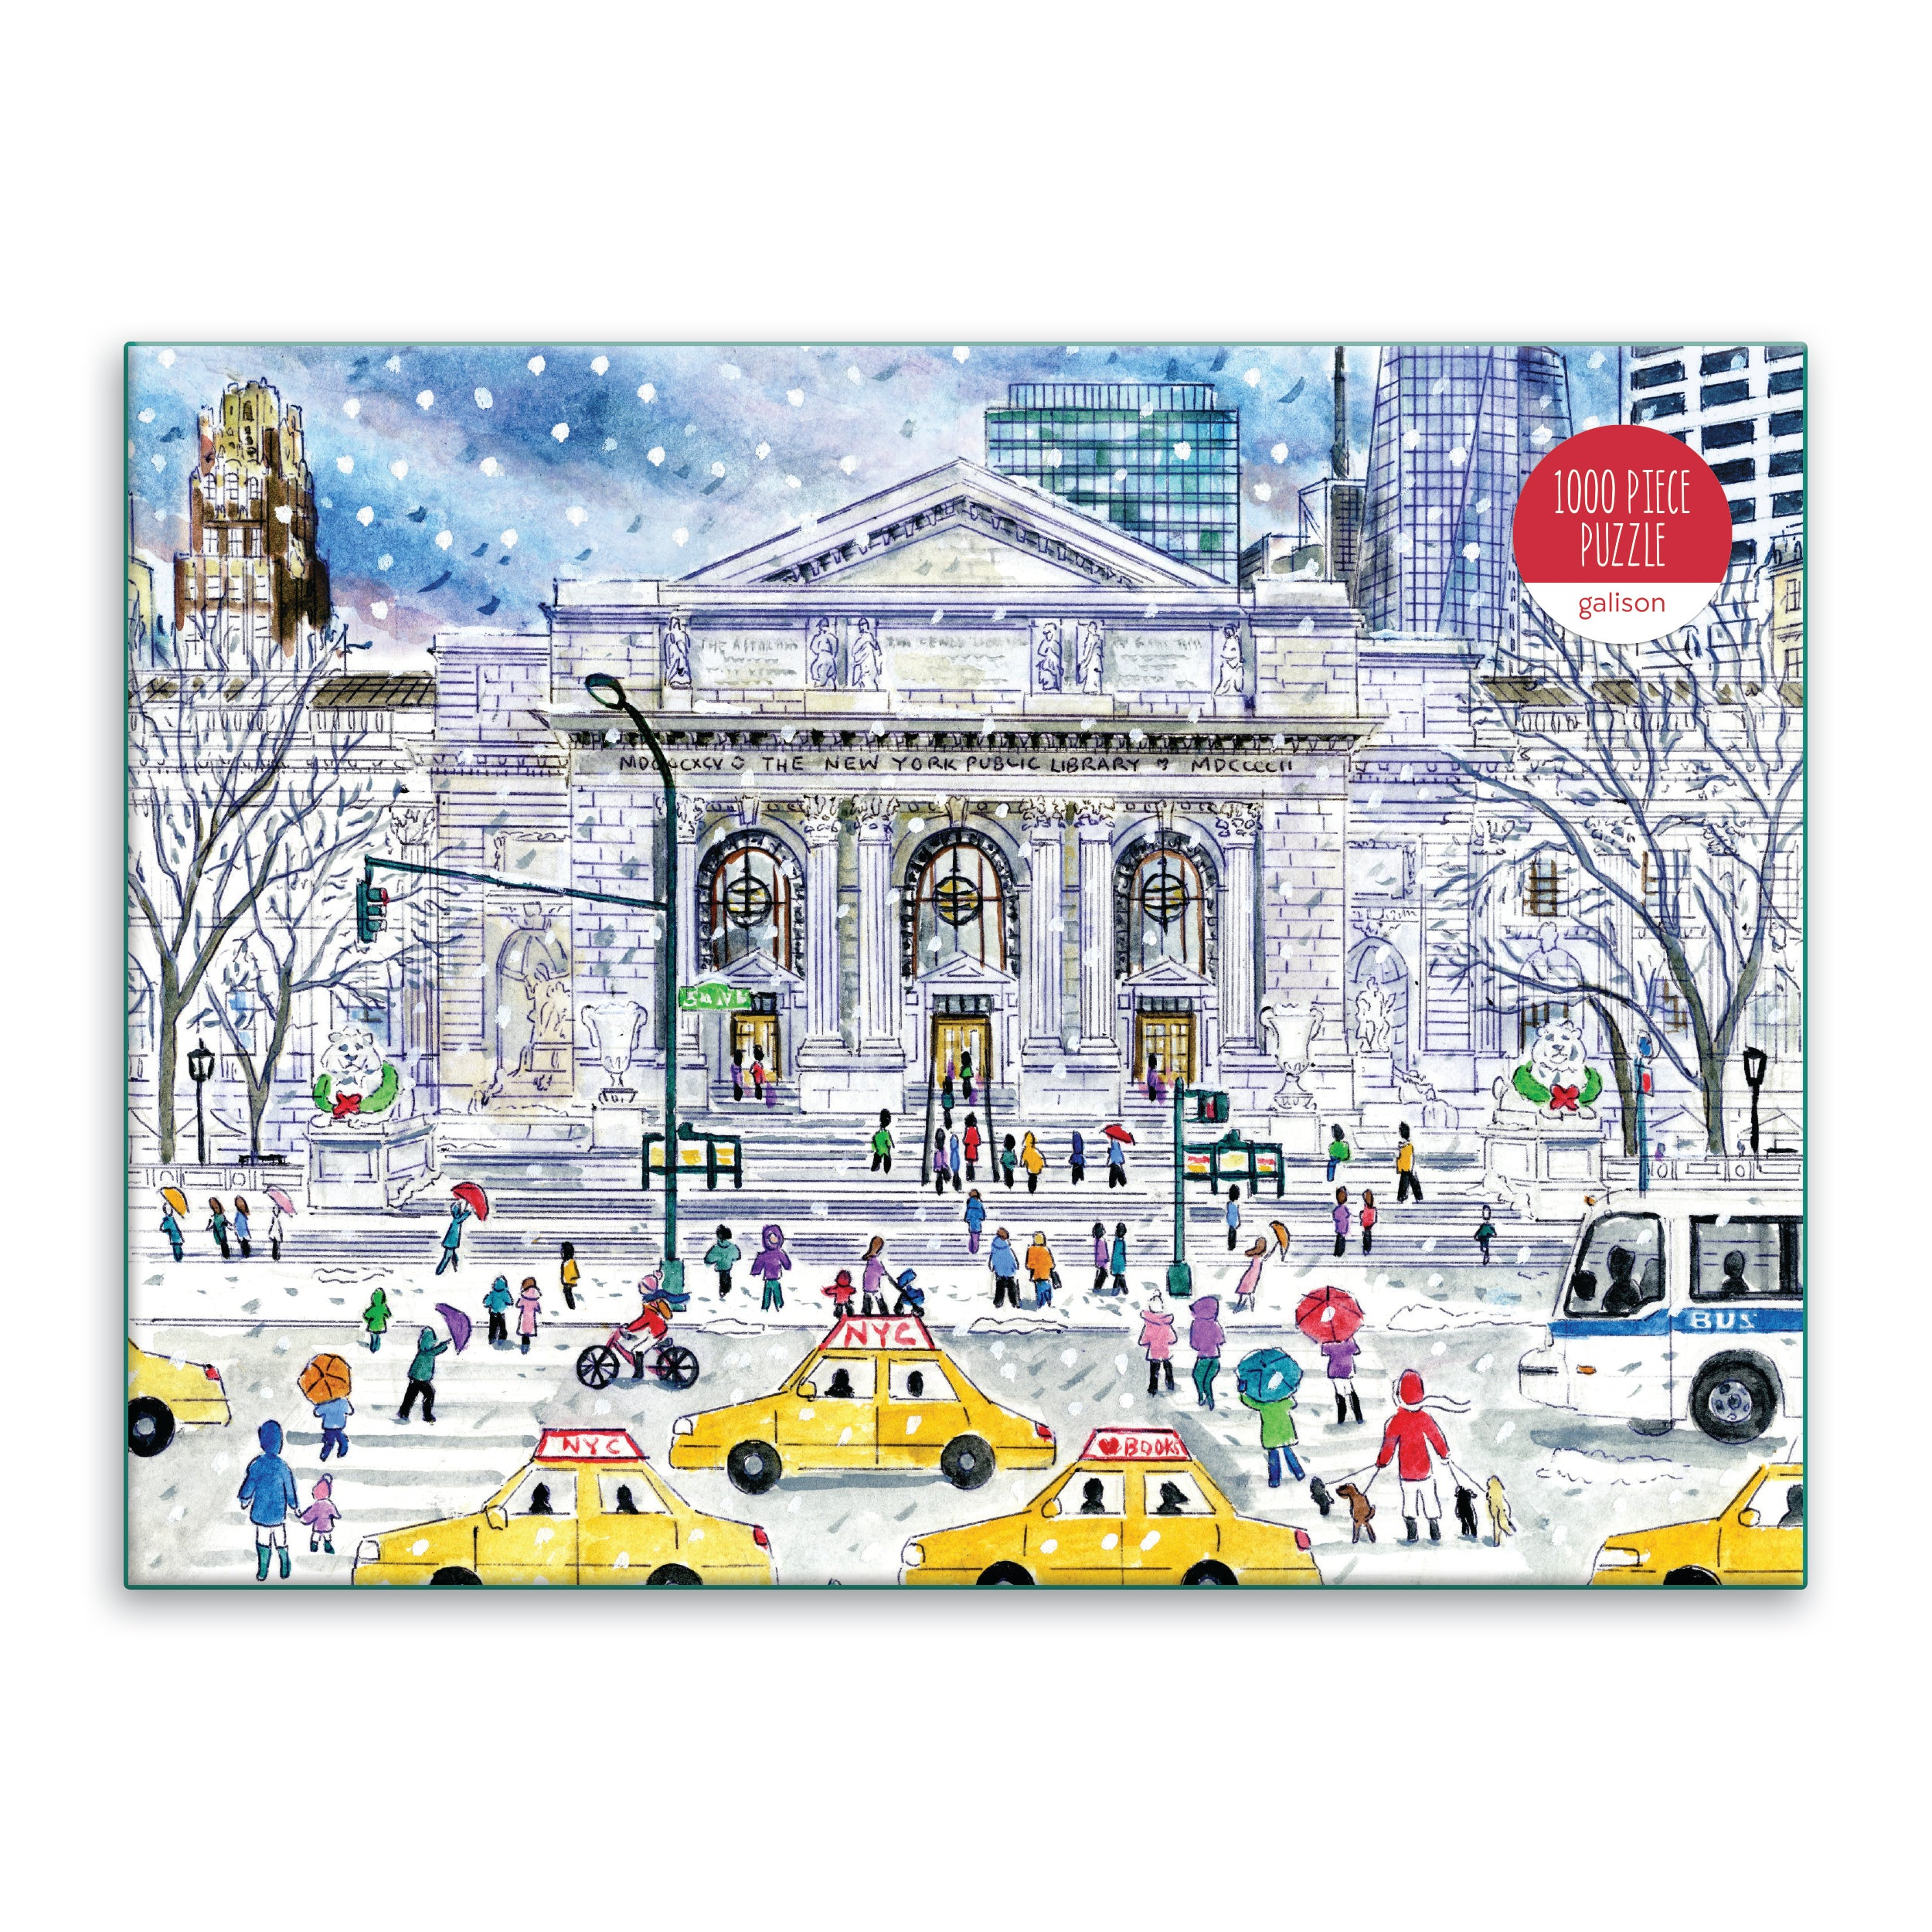 1000 Piece Galison New York Library Puzzle